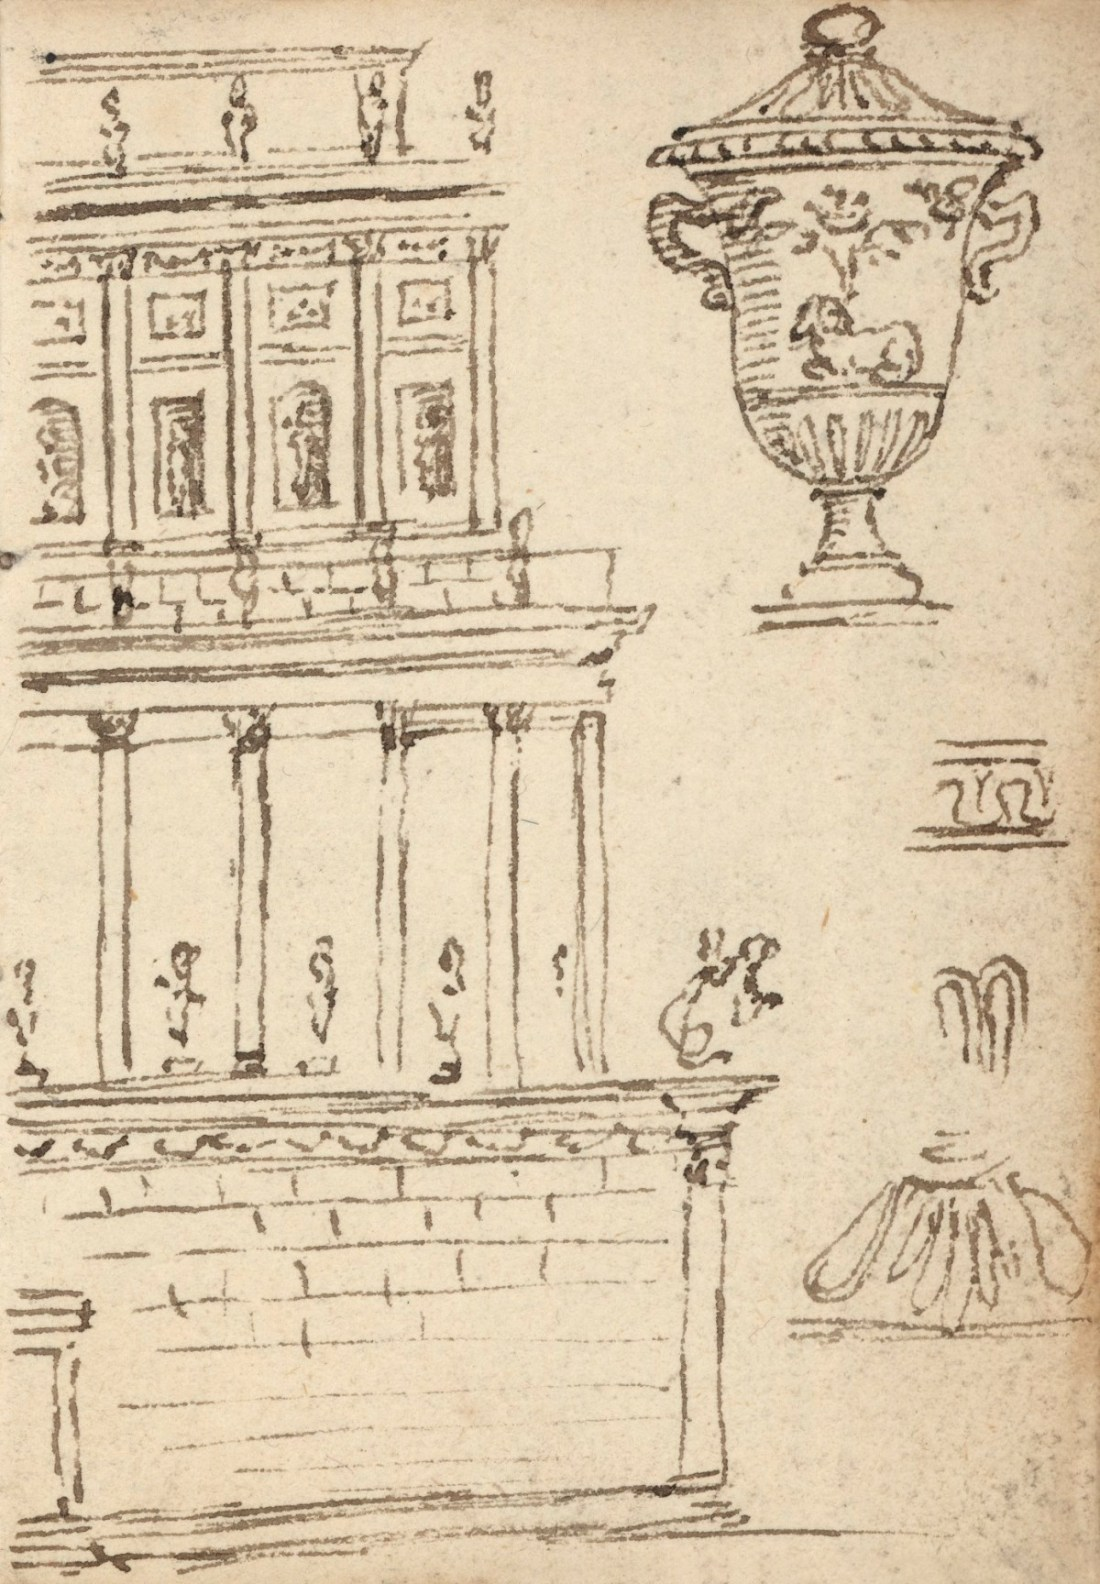 Leaf from a sketchbook with drawings of architecture, sculpture and ornament.